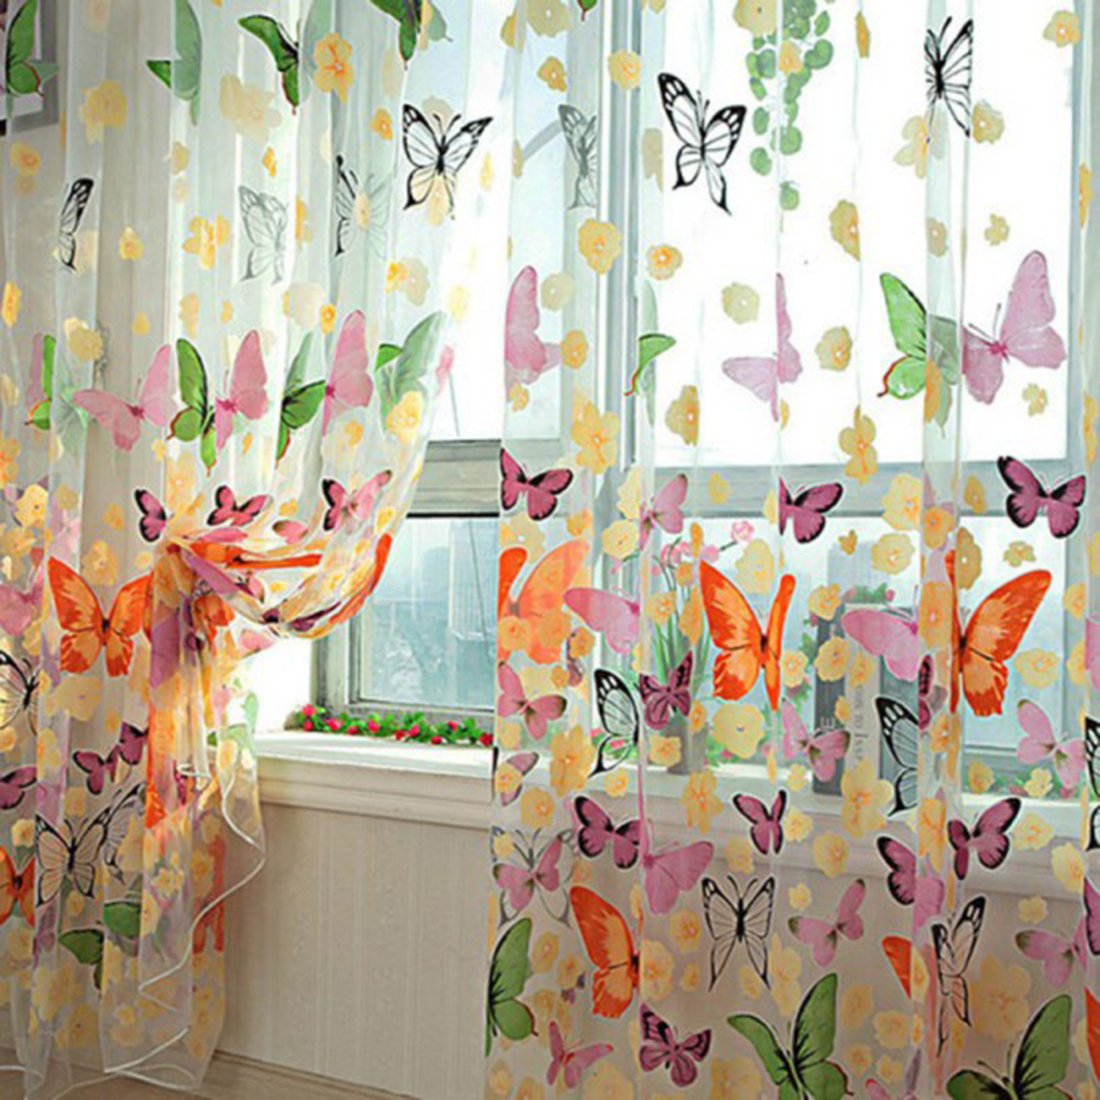 HMANE Offset Print Window Door Curtains Drapes Panels Sheer Voile Tulle Butterfly Pattern Shade Curtain